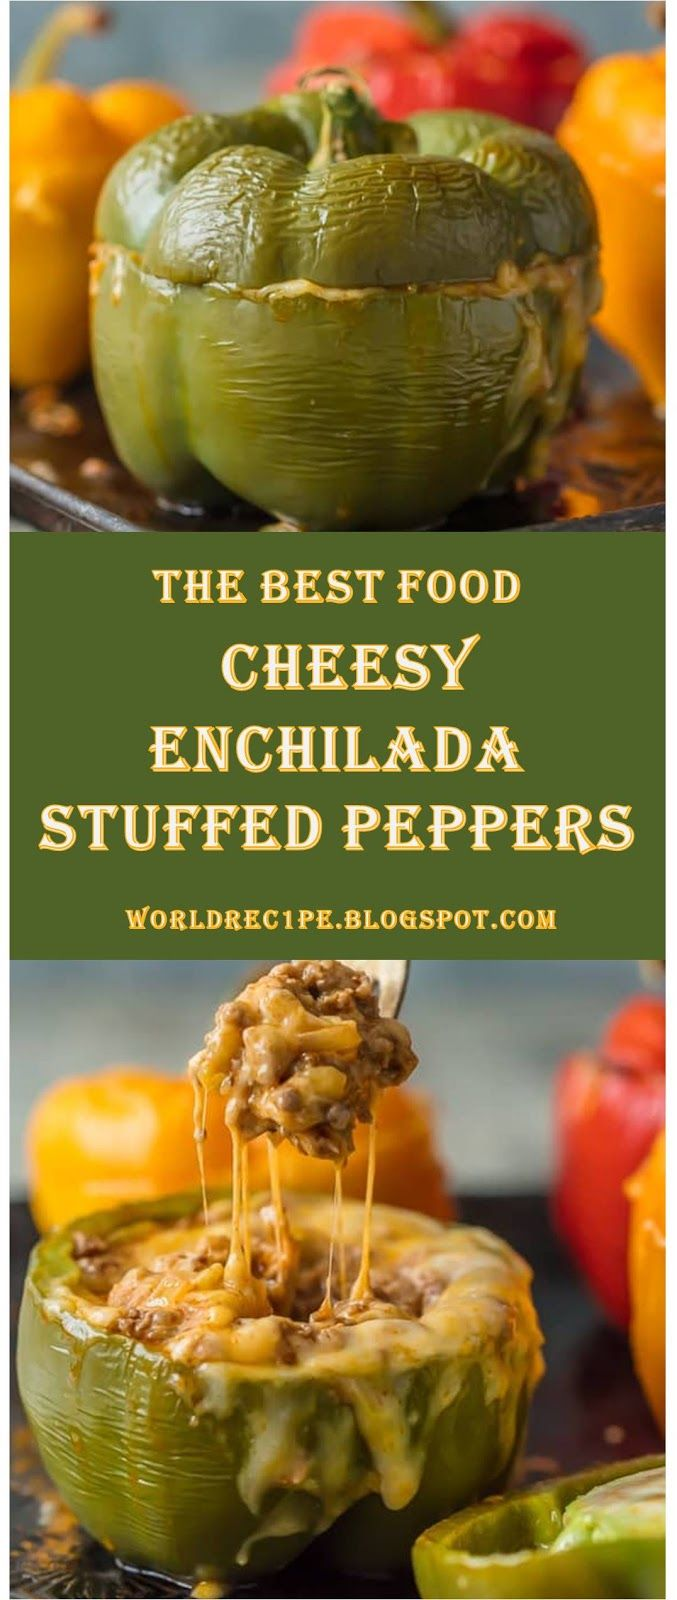 This Is The Best Food Cheese Recipes Cheesy Enchilada Stuffed Peppers 4 World Recipe Collection Katelyn Stuffed Peppers Cheesy Enchiladas Recipes